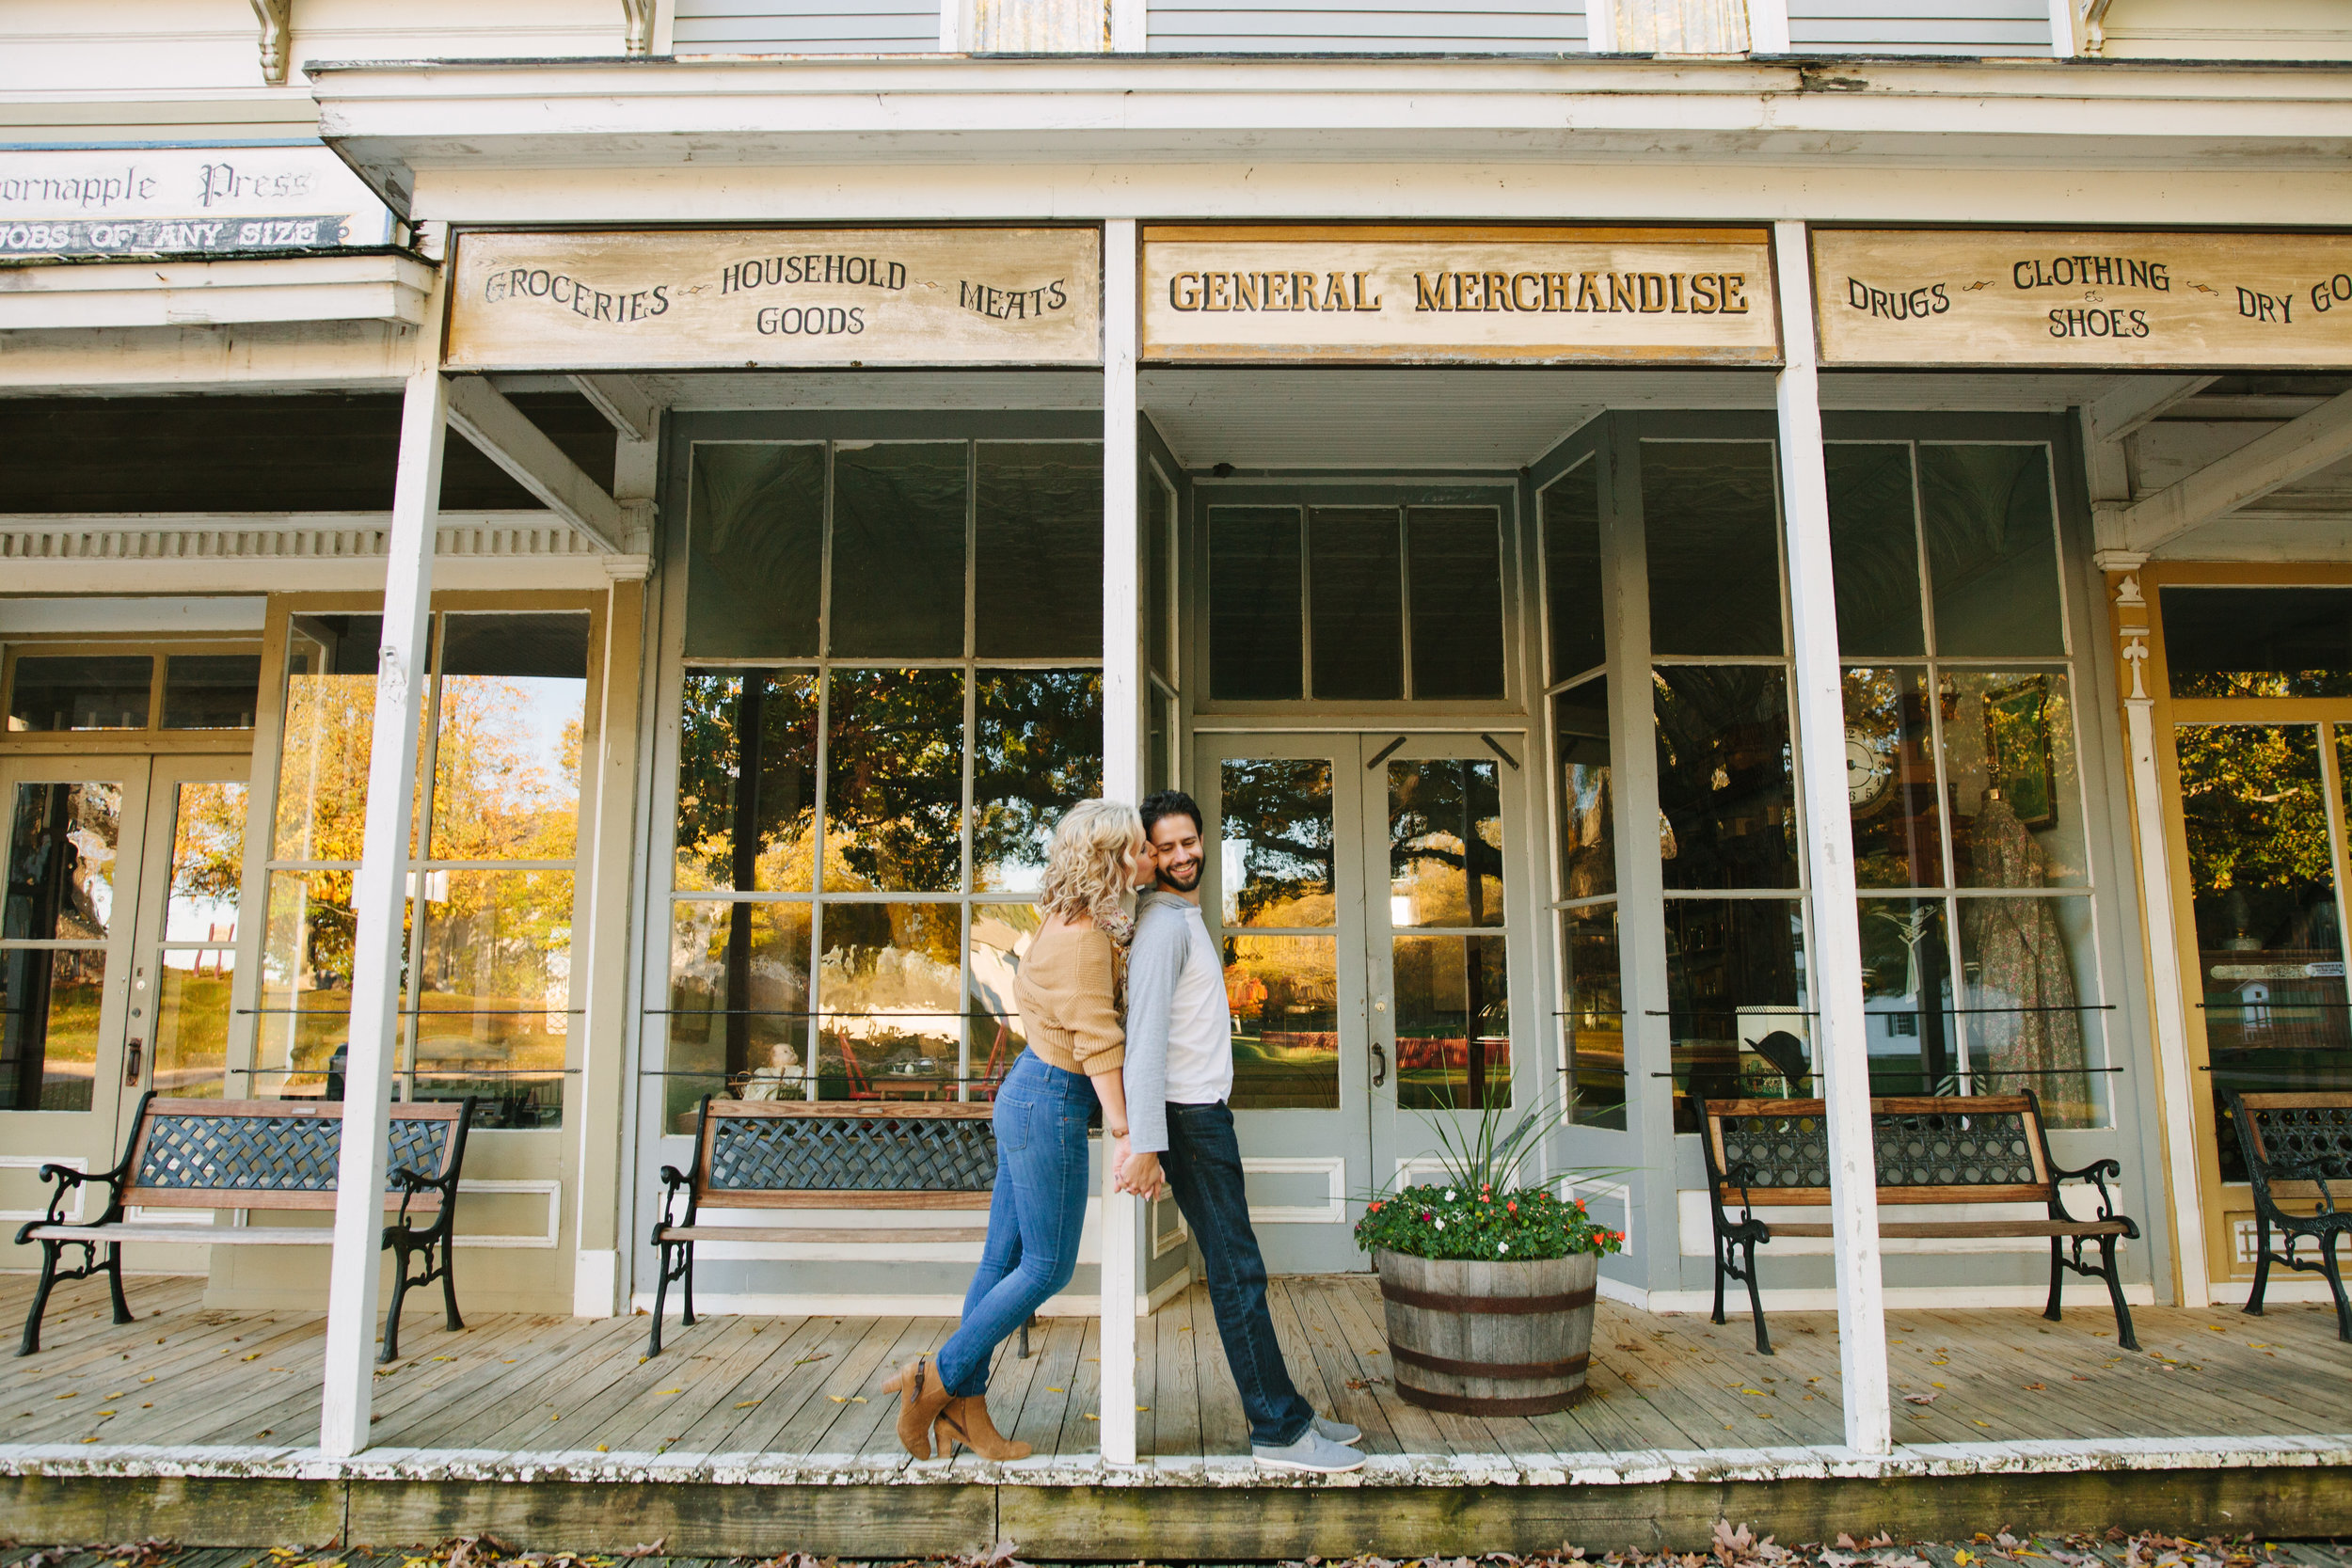 charltonpark_engagementsession_grandrapidsphotographer_grandrapids_hastings_michiganwedding_fallengagement_fallwedding_jdarlingphoto_jessicadarling_westmichiganphotographer_wedding_fall_rusticwedding  011.jpg